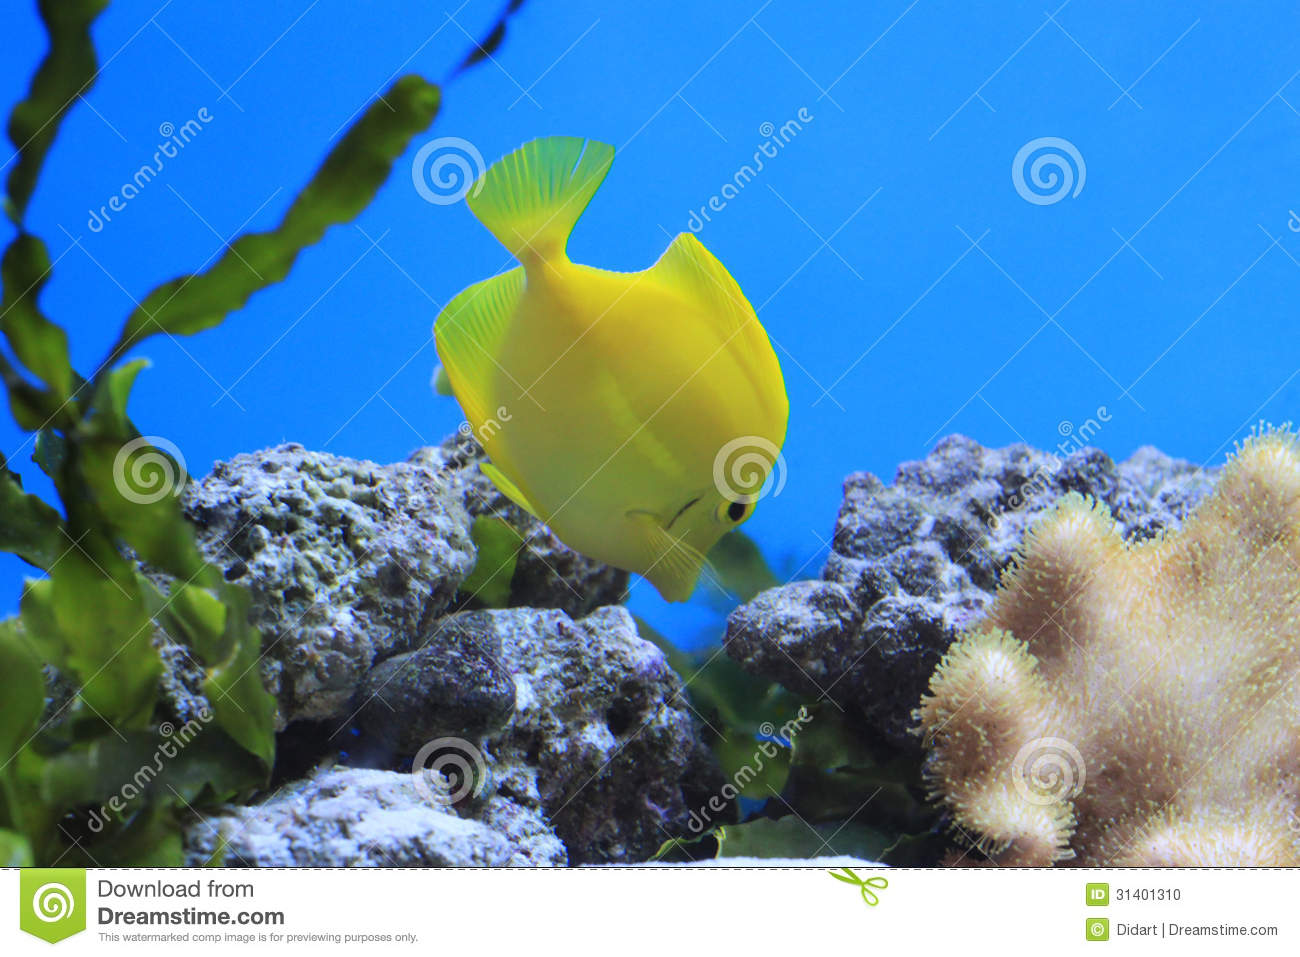 Coral reef fish yellow - photo#23